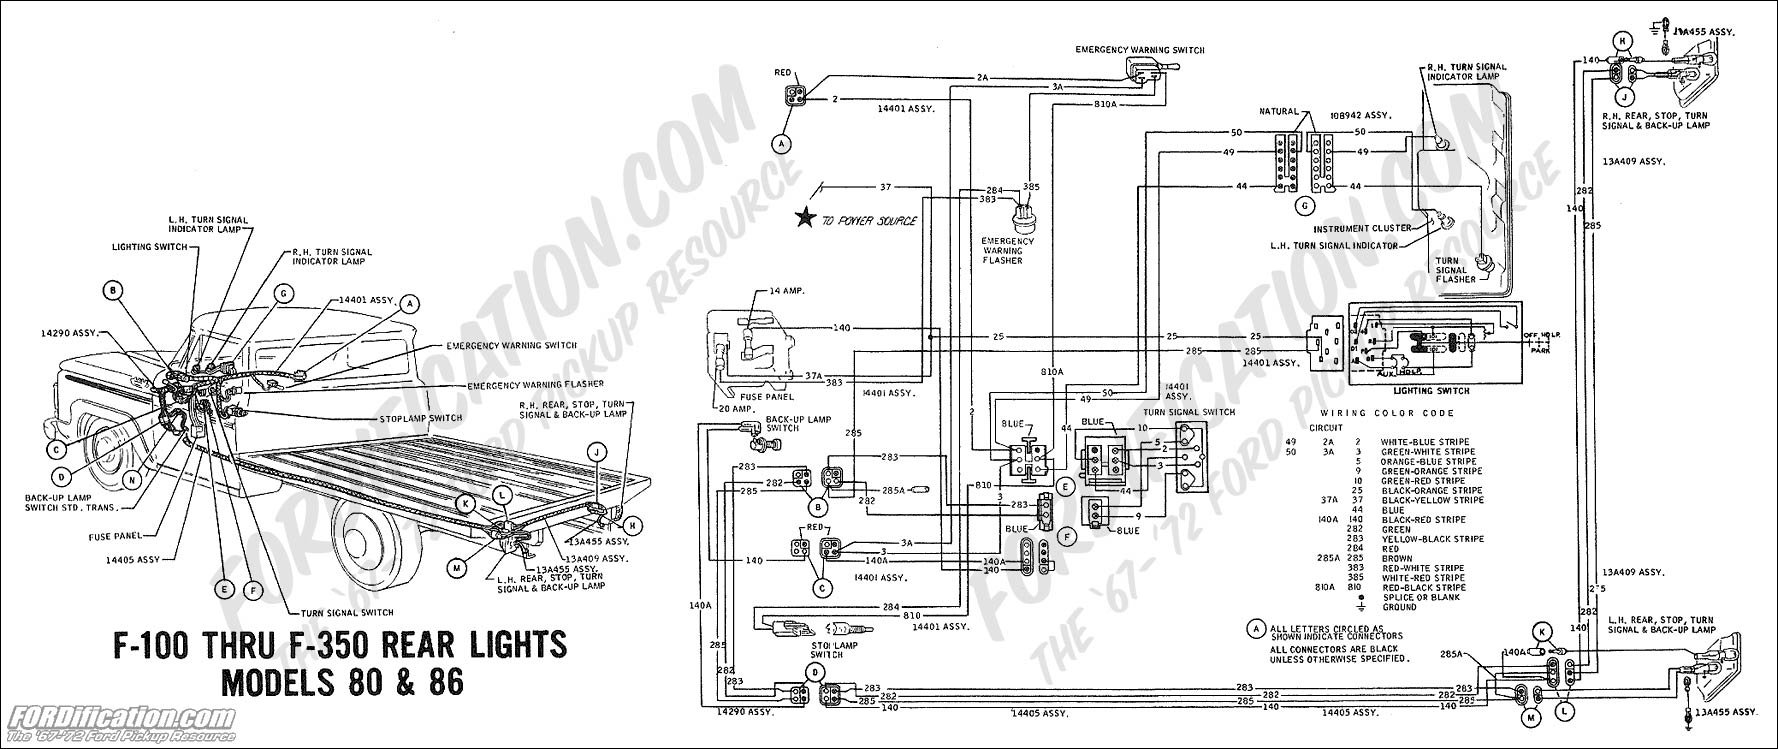 dynastart wiring diagram 2003 silverado radio ford truck technical drawings and schematics - section h diagrams